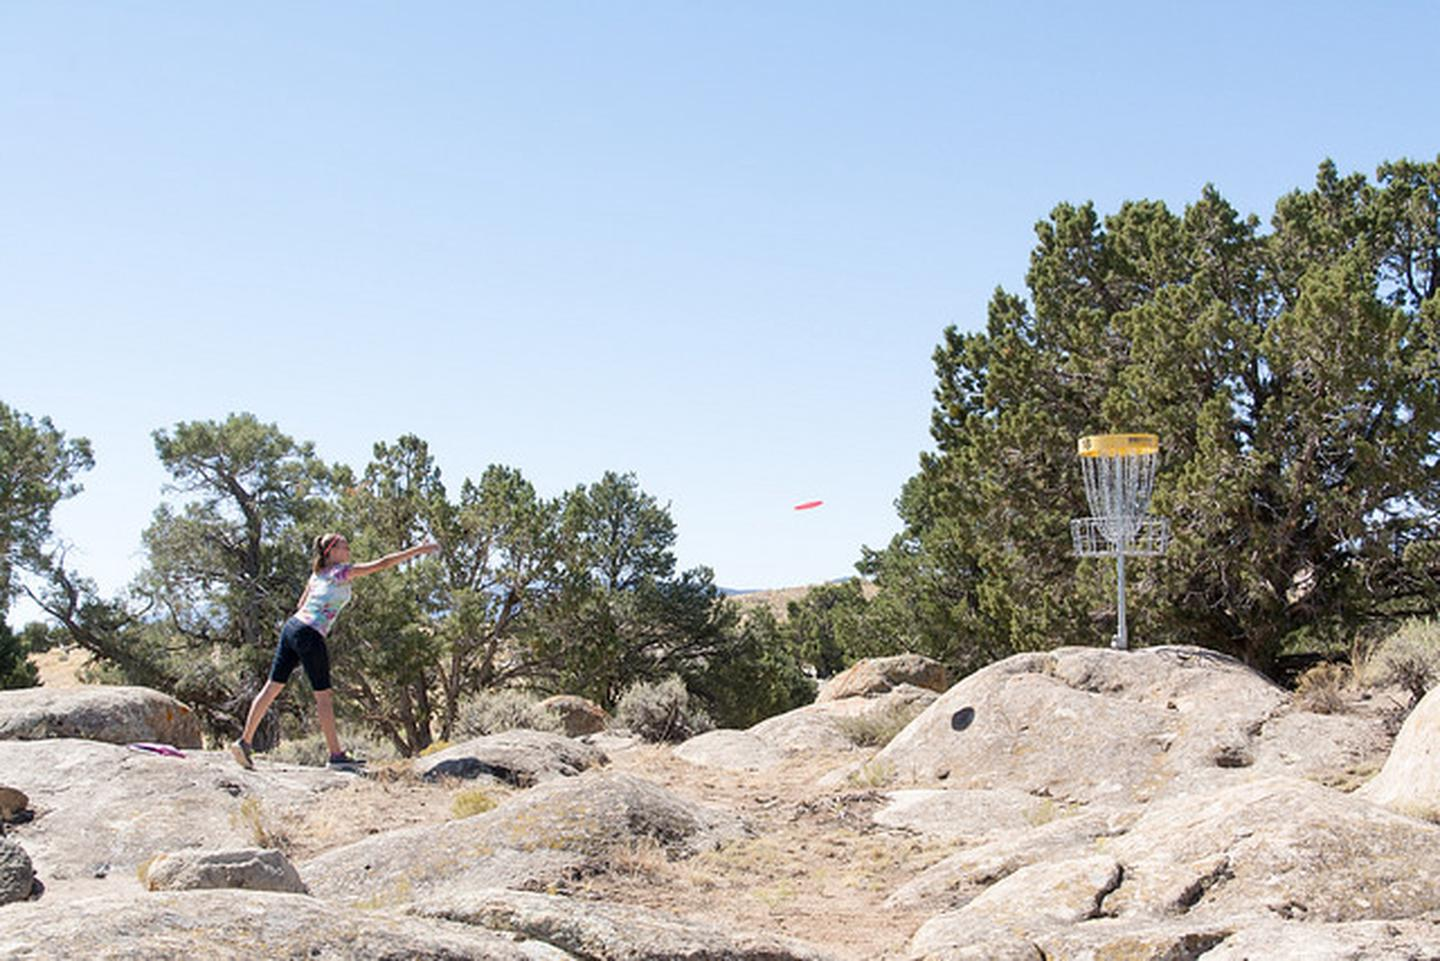 Three Peaks Disc Golf CourseThree Peaks Recreation Area provides a challenging disc golf course.